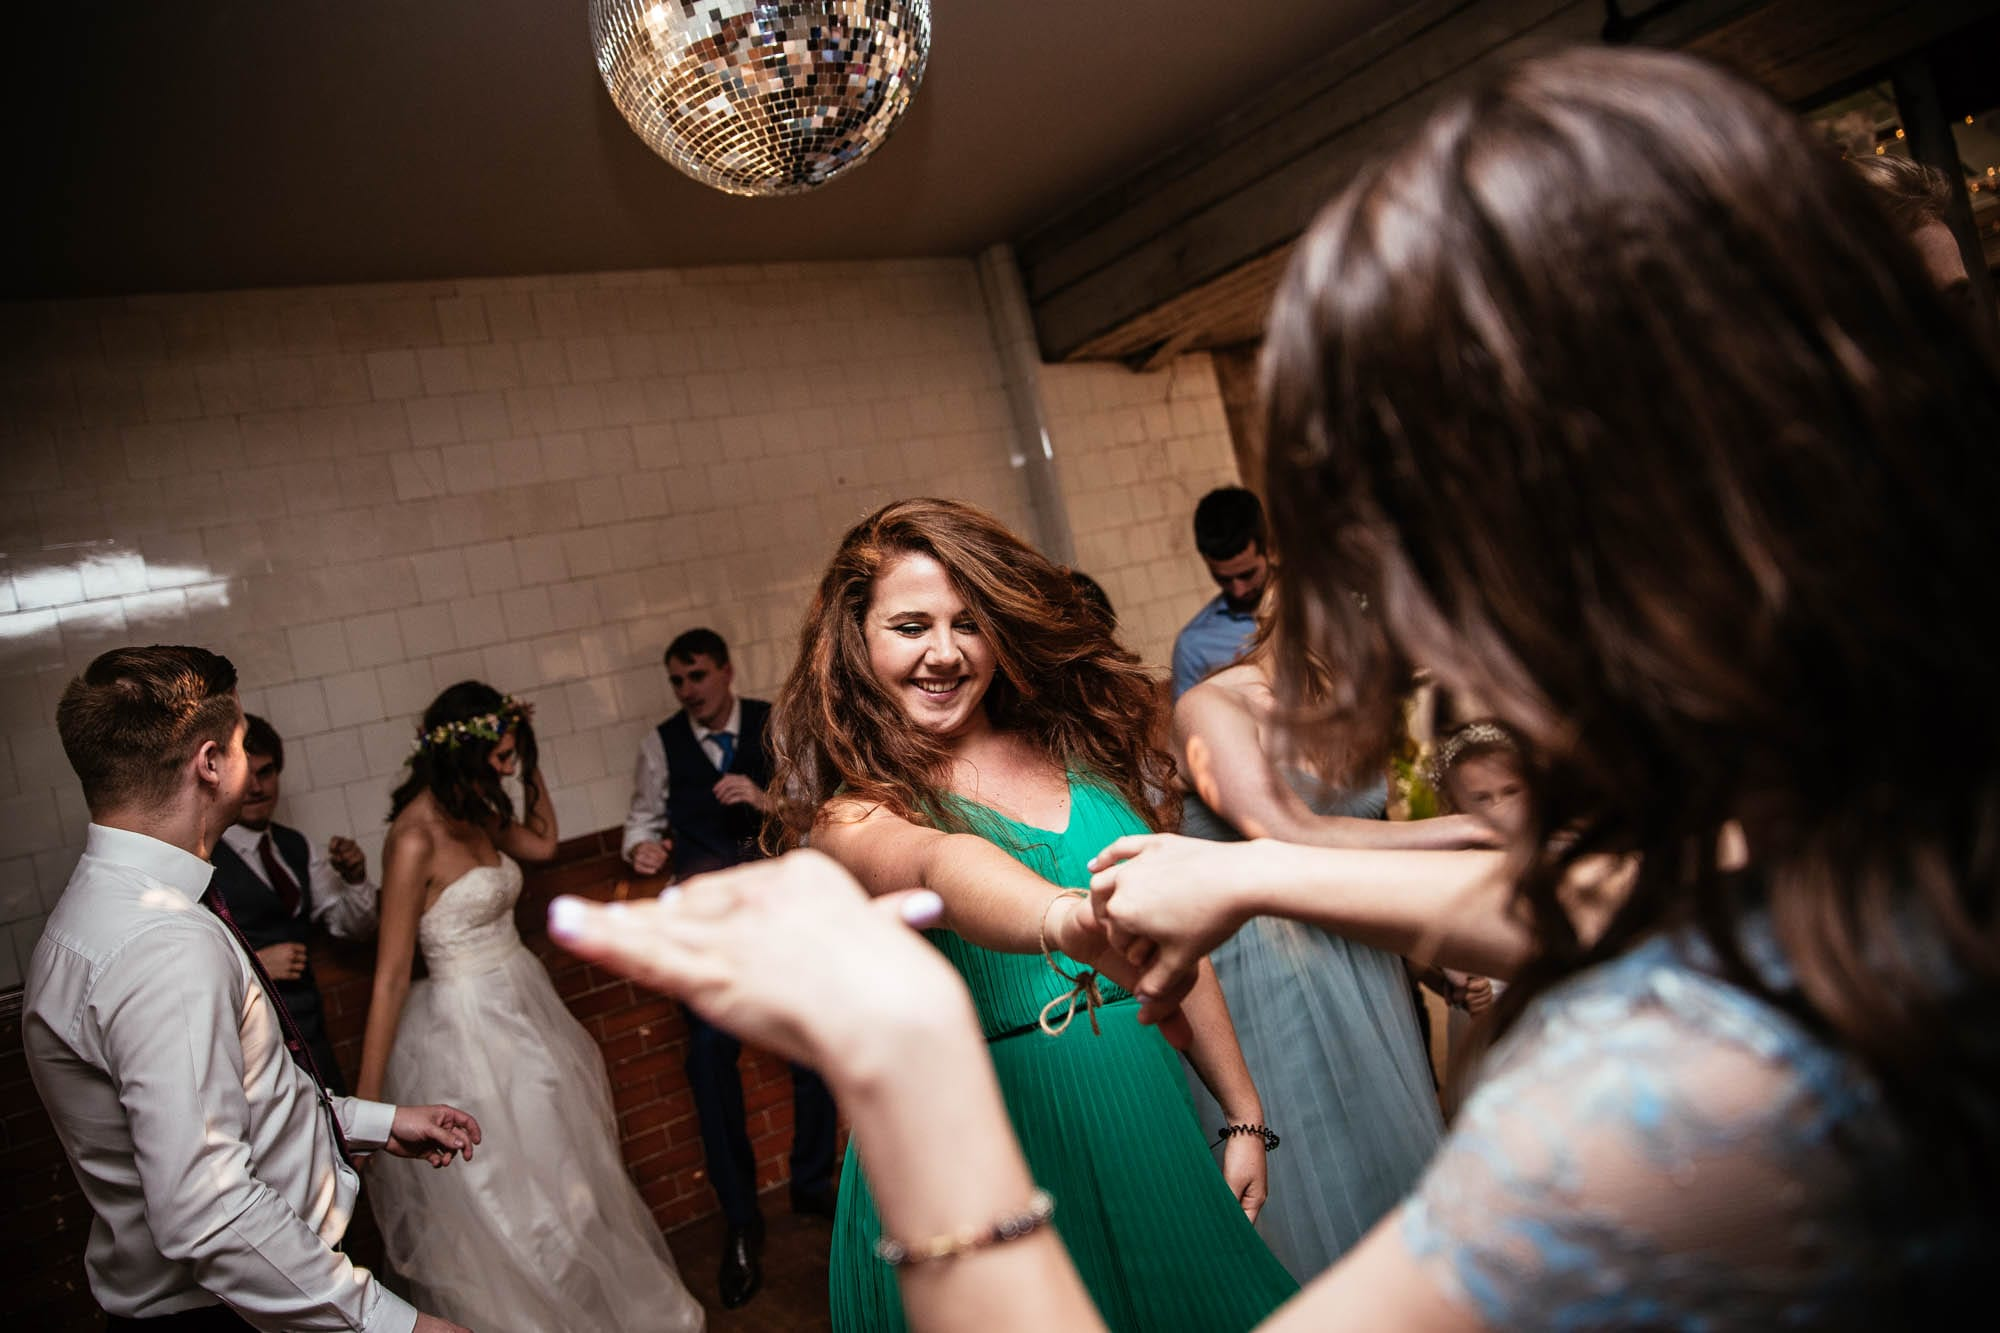 Dancing at Plas Dinam Country House Mid Wales Wedding Reception